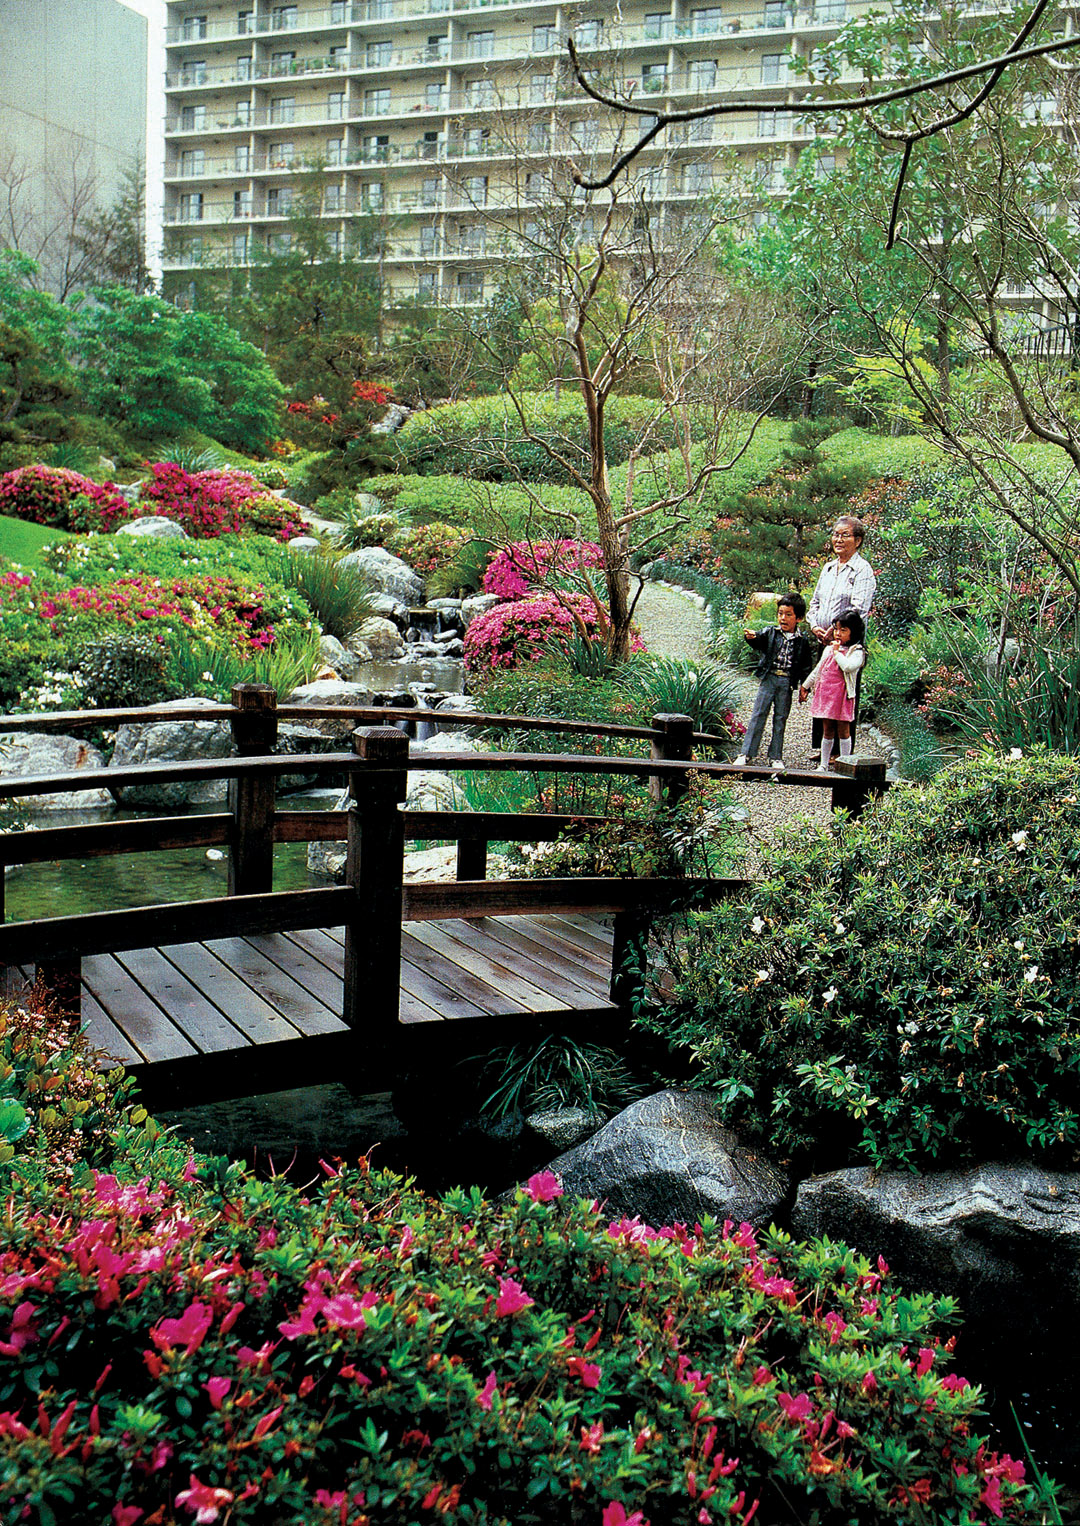 Pacific horticulture society california japanese style for Japanese garden plans and plants